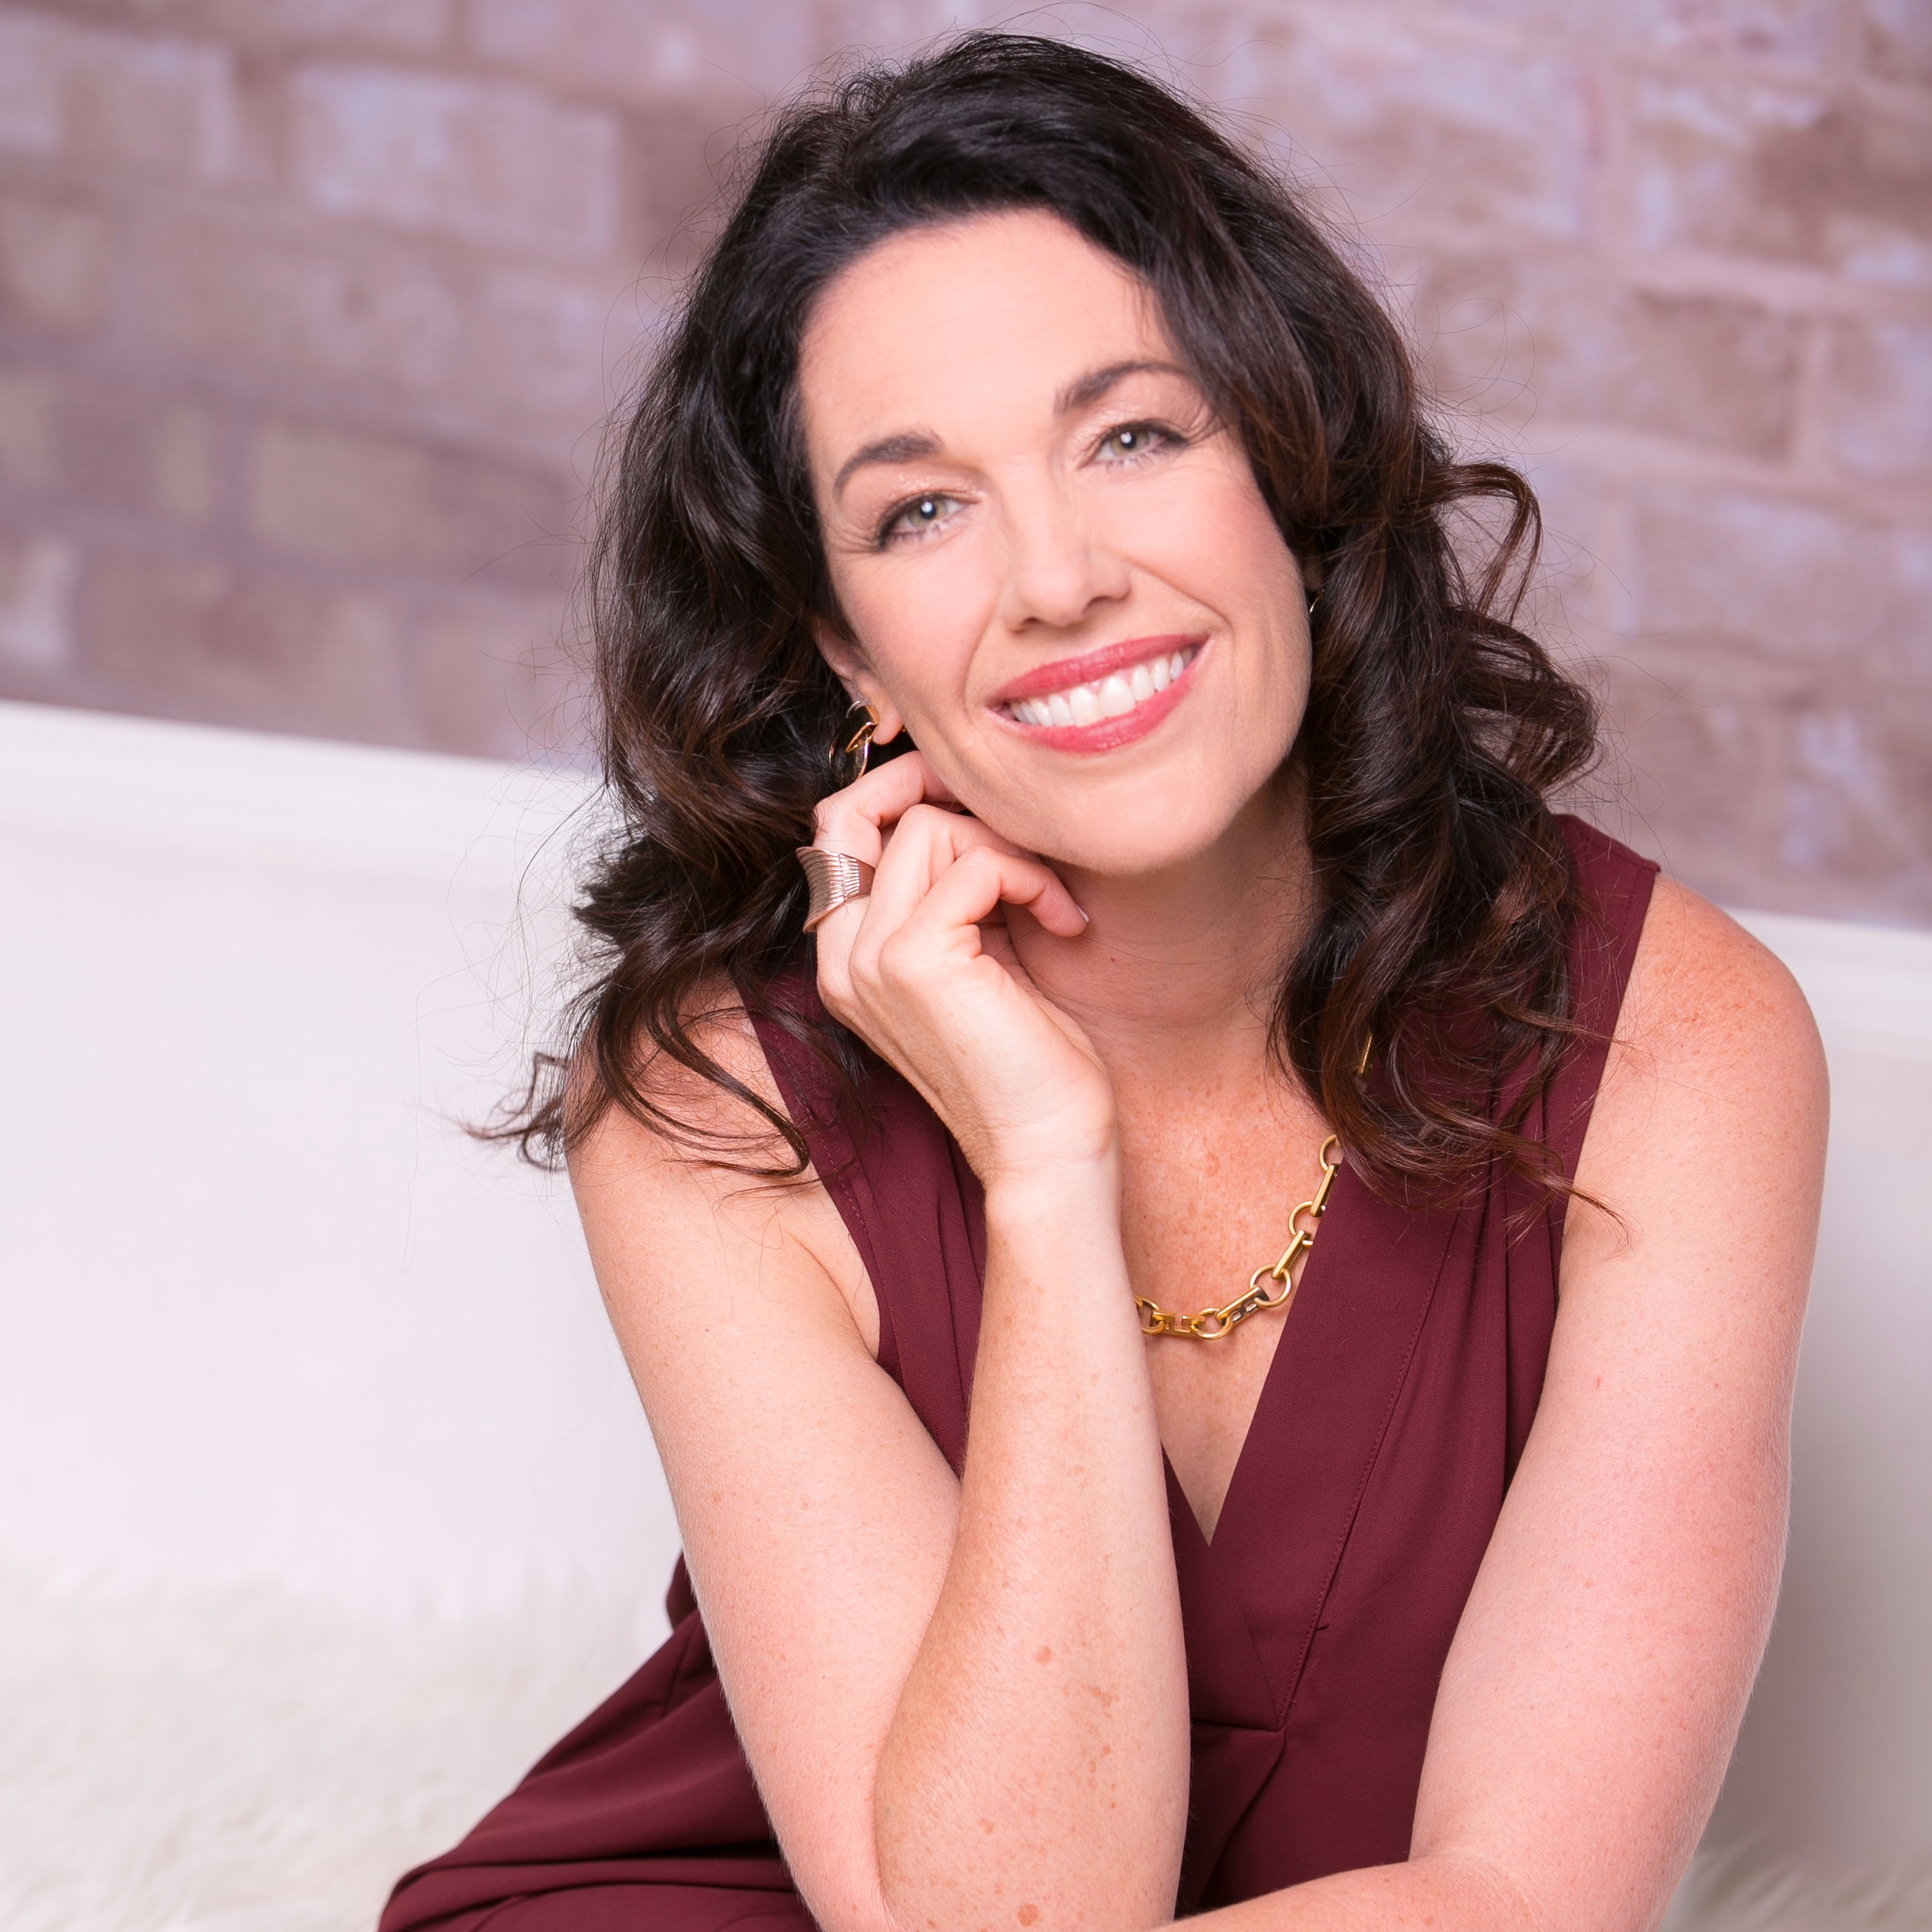 Katie Goodman, personal life coach based in NYC